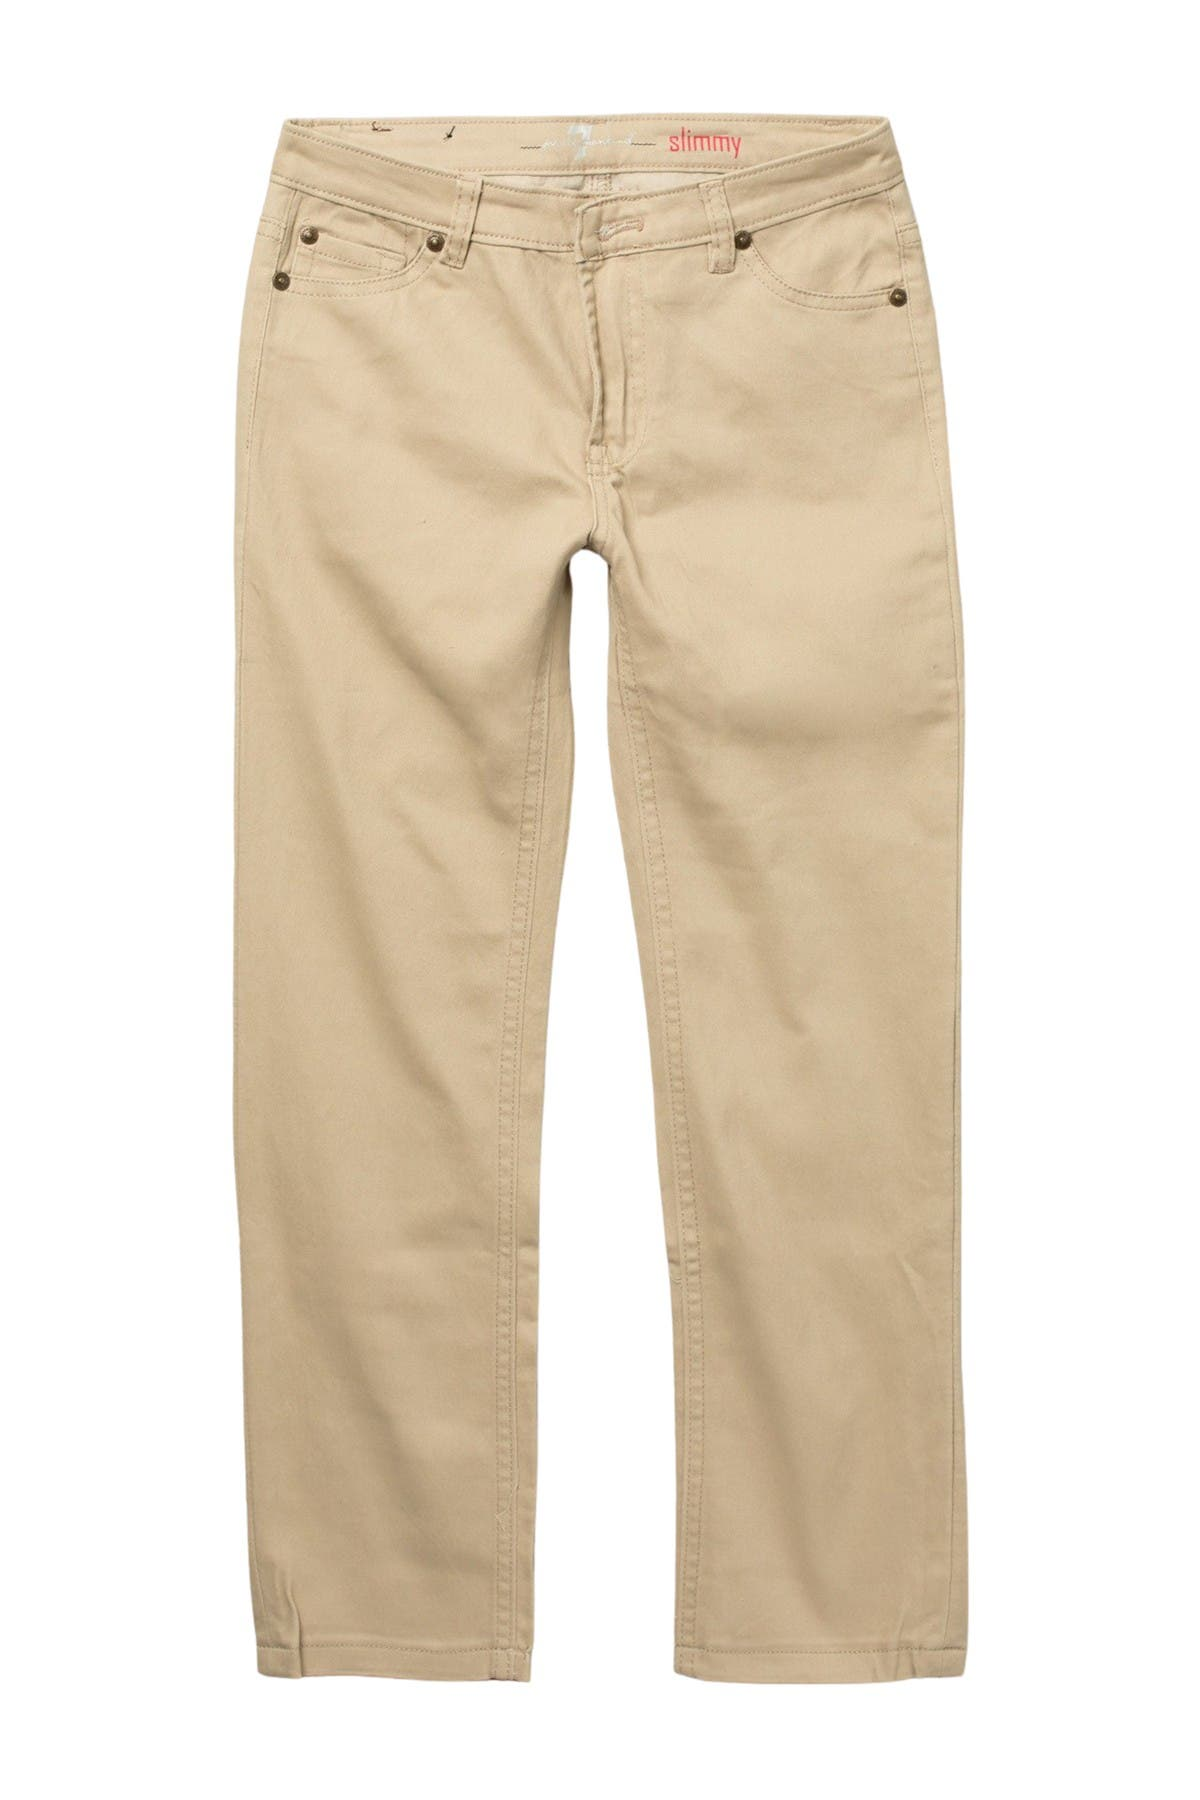 Image of 7 For All Mankind Slimmy Stretch Brush Twill Pants